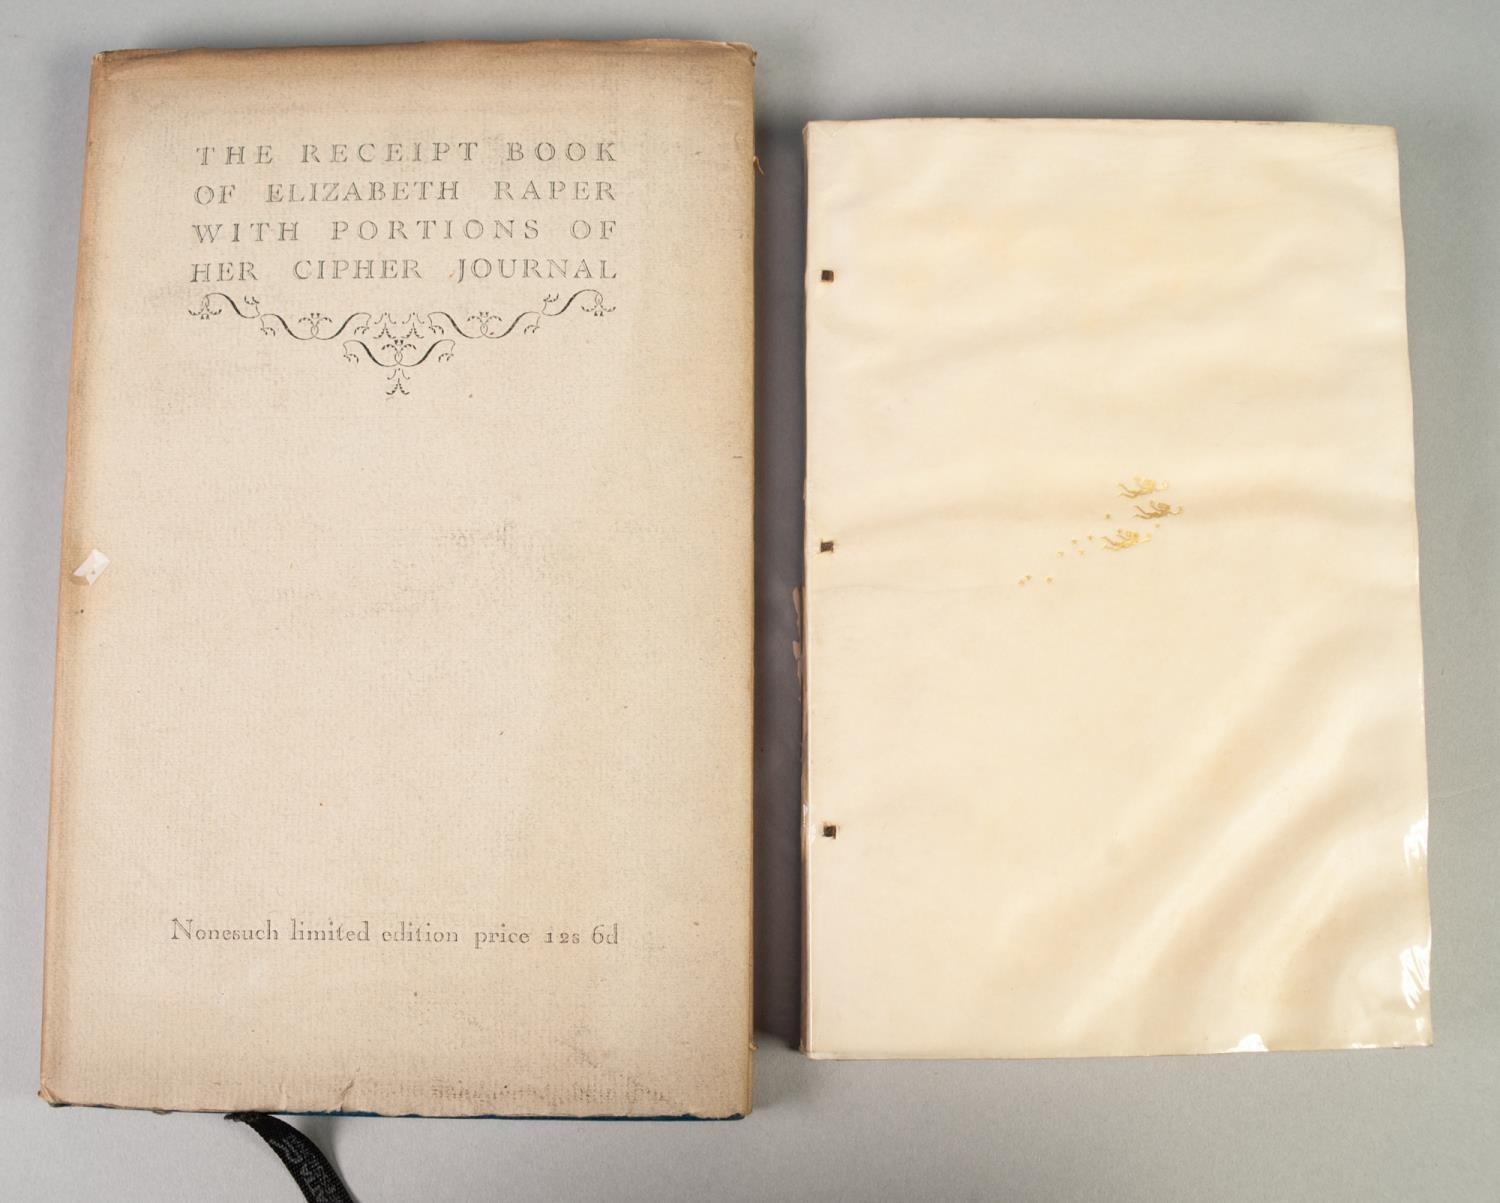 PRIVATE PRESS - TWO TITLES FROM THE NONESUCH PRESS to include The Receipt Book of Elizabeth Raper - Image 2 of 7